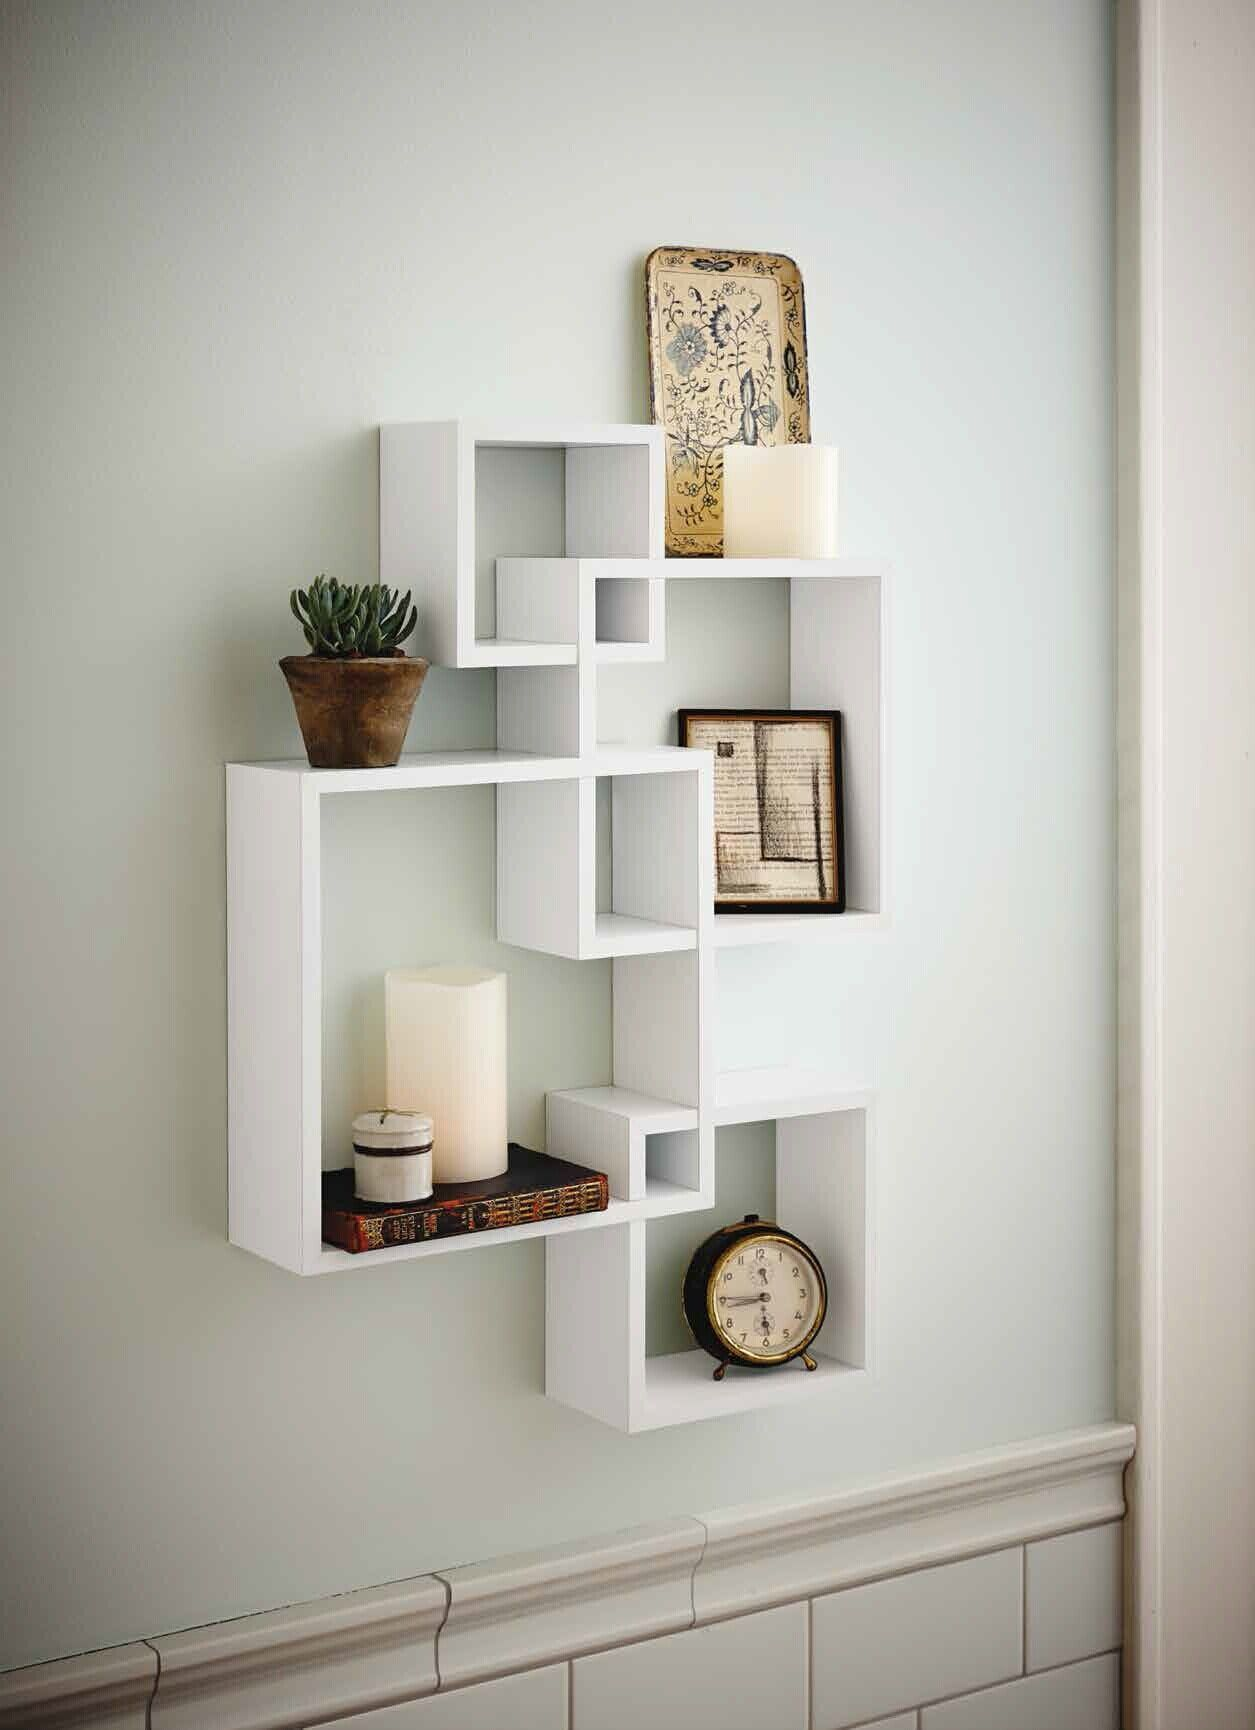 Shelving Solution Intersecting Decorative White Color Wall Shelf Set Of 4 2 Candles Included